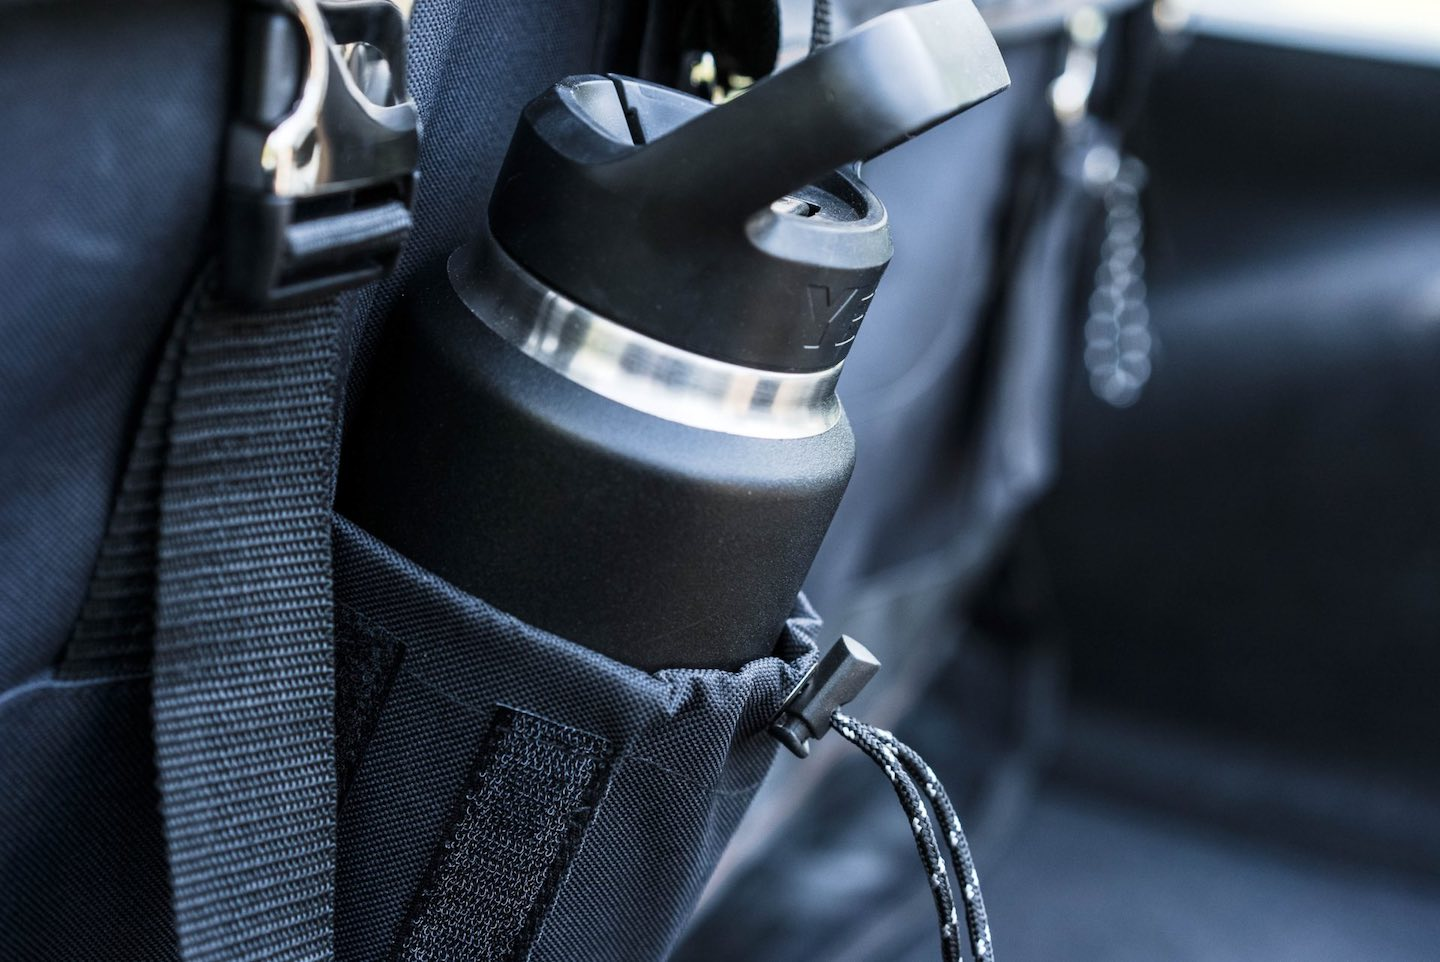 Image of a reuseable water bottle in a pocket